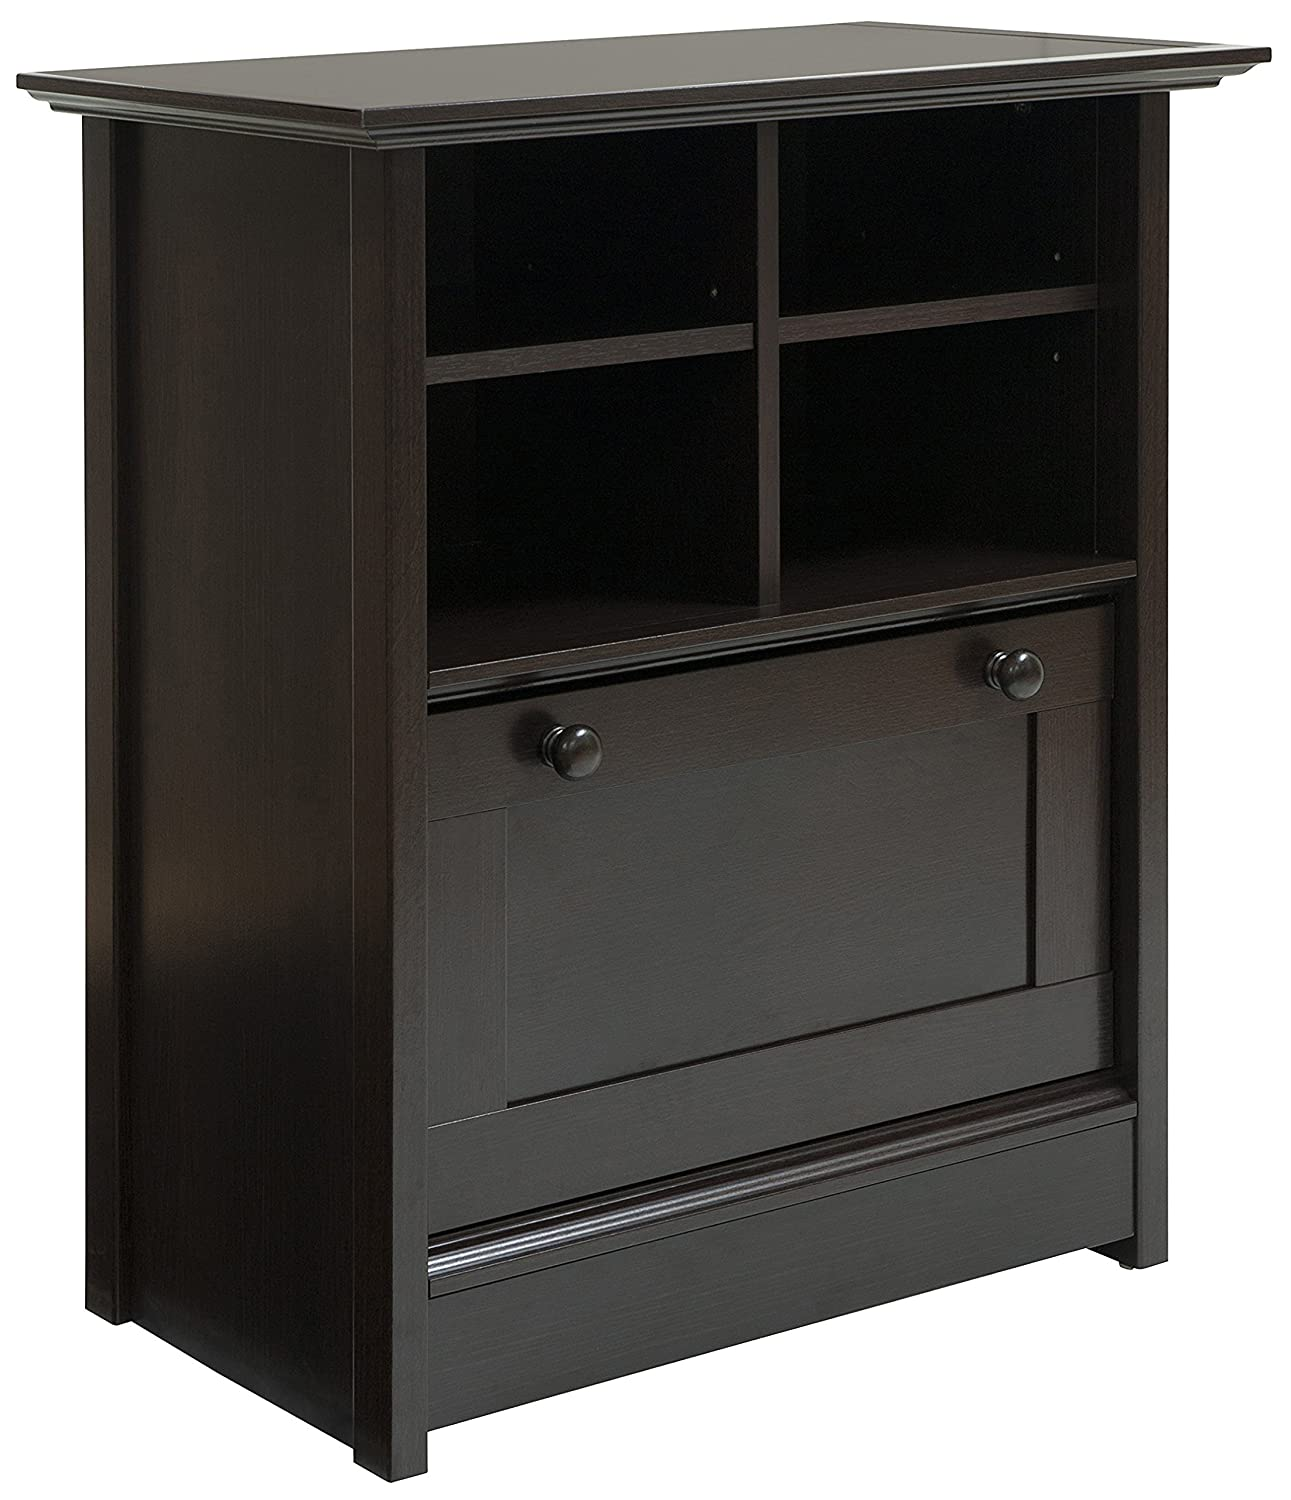 new filing cabinet series file designer steelwise office drawer steel furnishings lateral files family performance